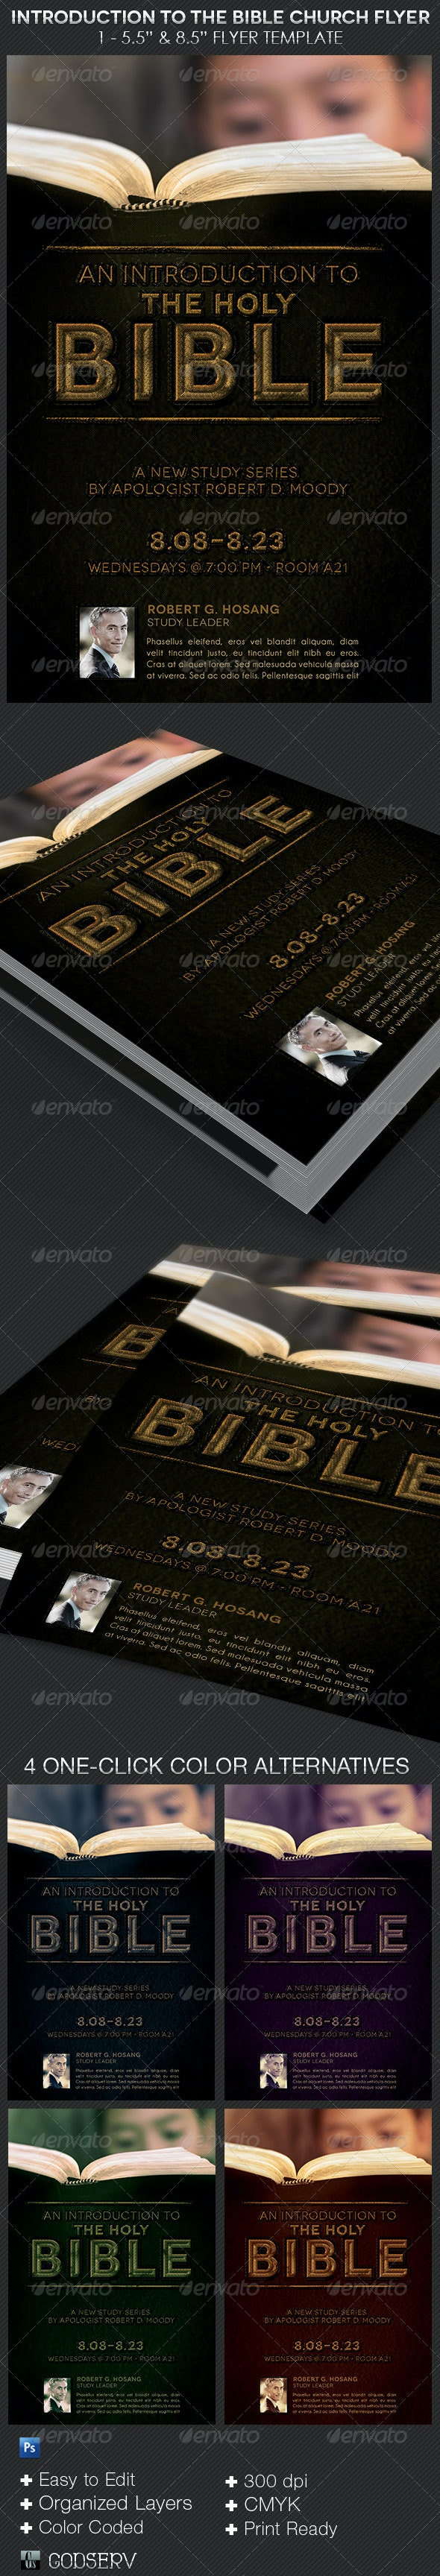 Bible Introduction Church Flyer Template - Church Flyers